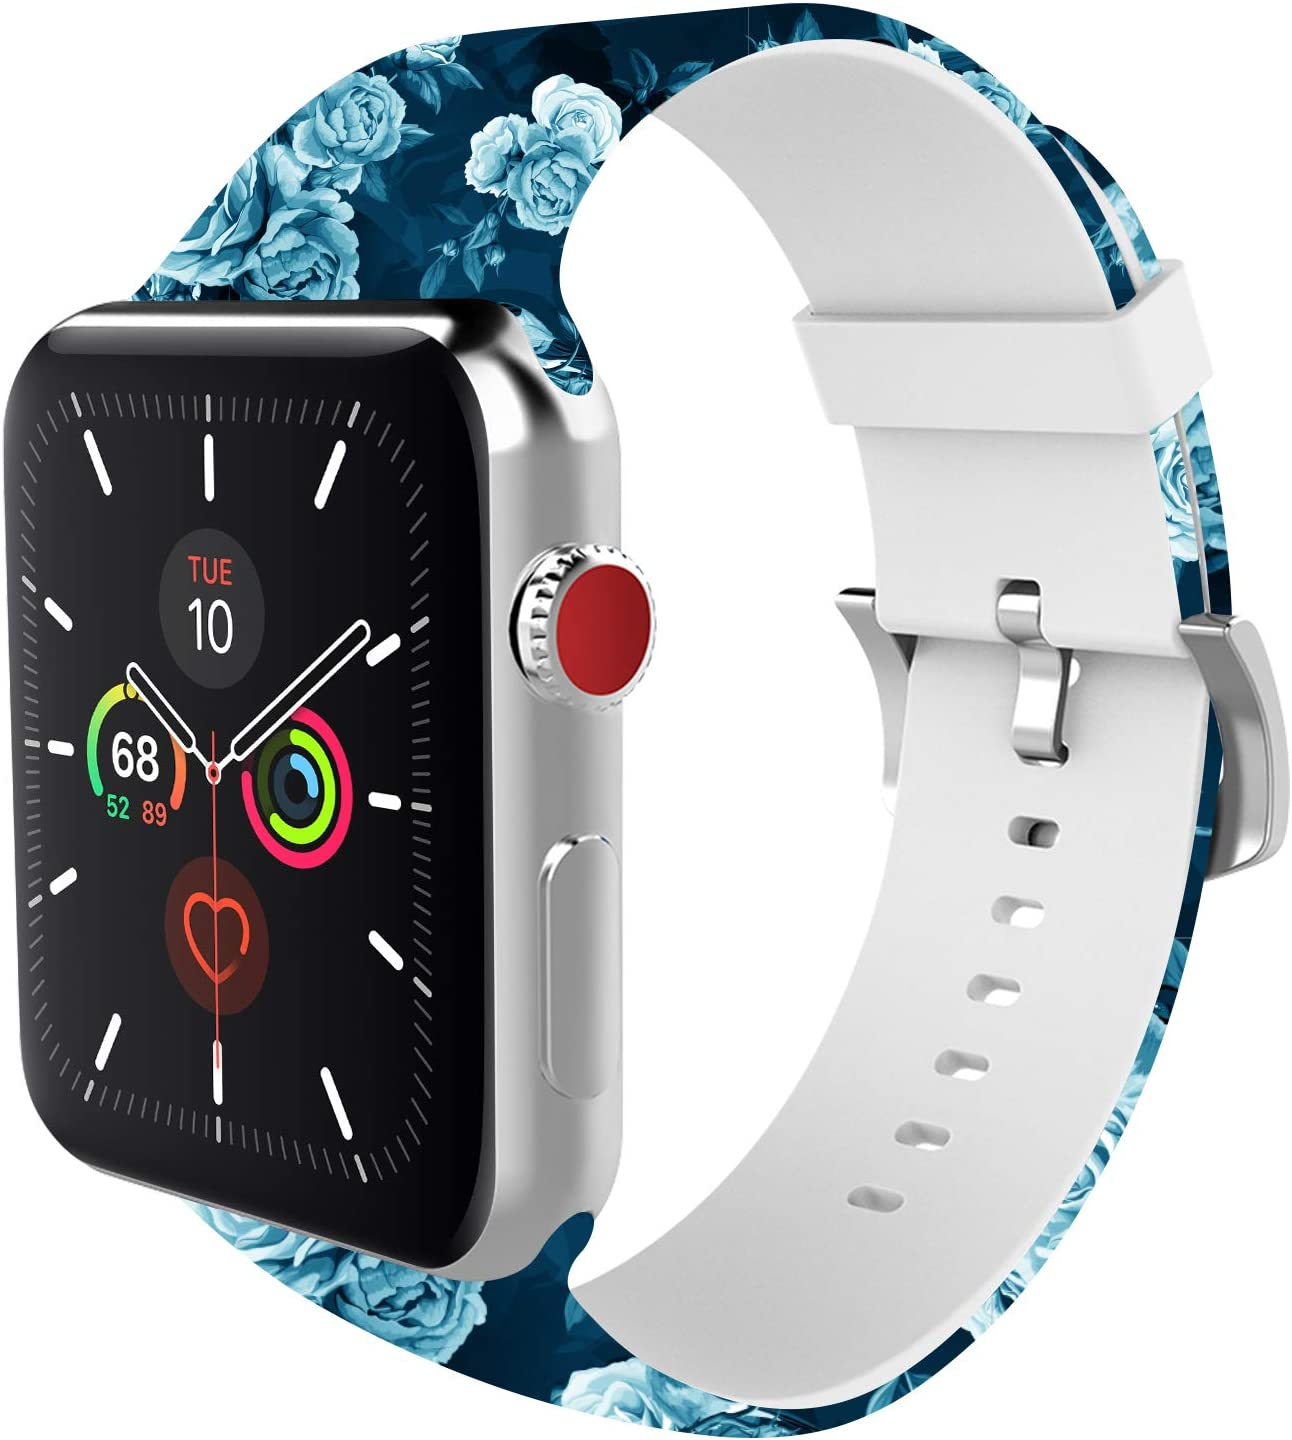 BMBEAR Sports Band Floral Bands Compatible with Apple Watch Band 38mm 40mm Soft Silicone Fadeless Pattern Printed Replacement Sport Band for iWacth Series 6 5 4 3 2 1 White Blue Rose